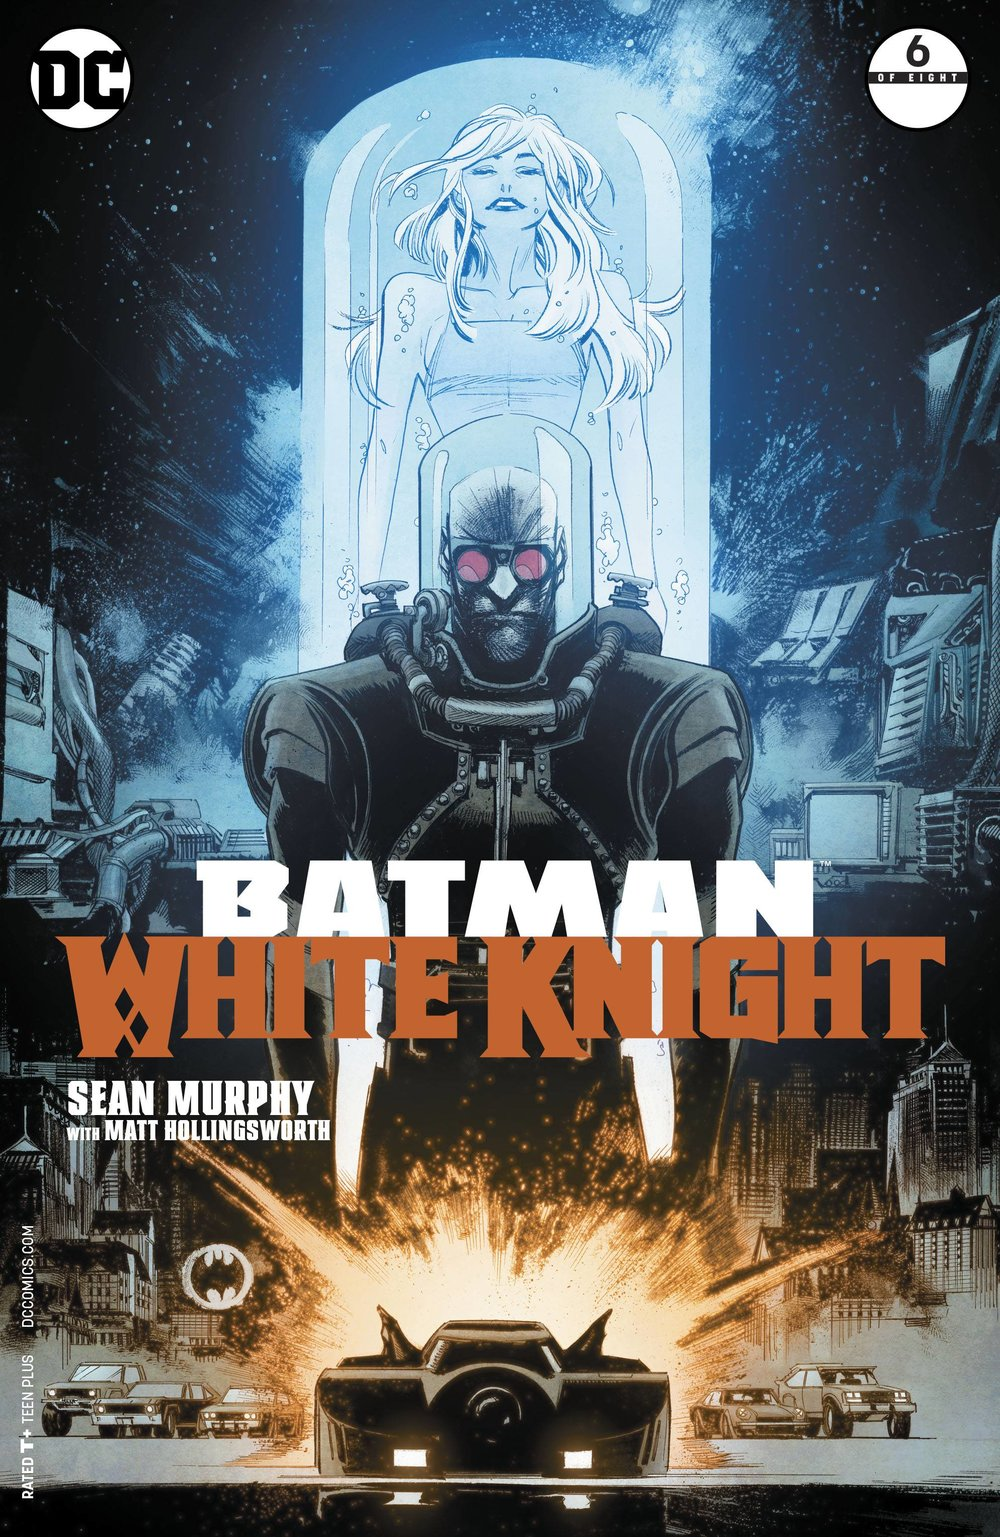 BATMAN WHITE KNIGHT 6 of 8.jpg